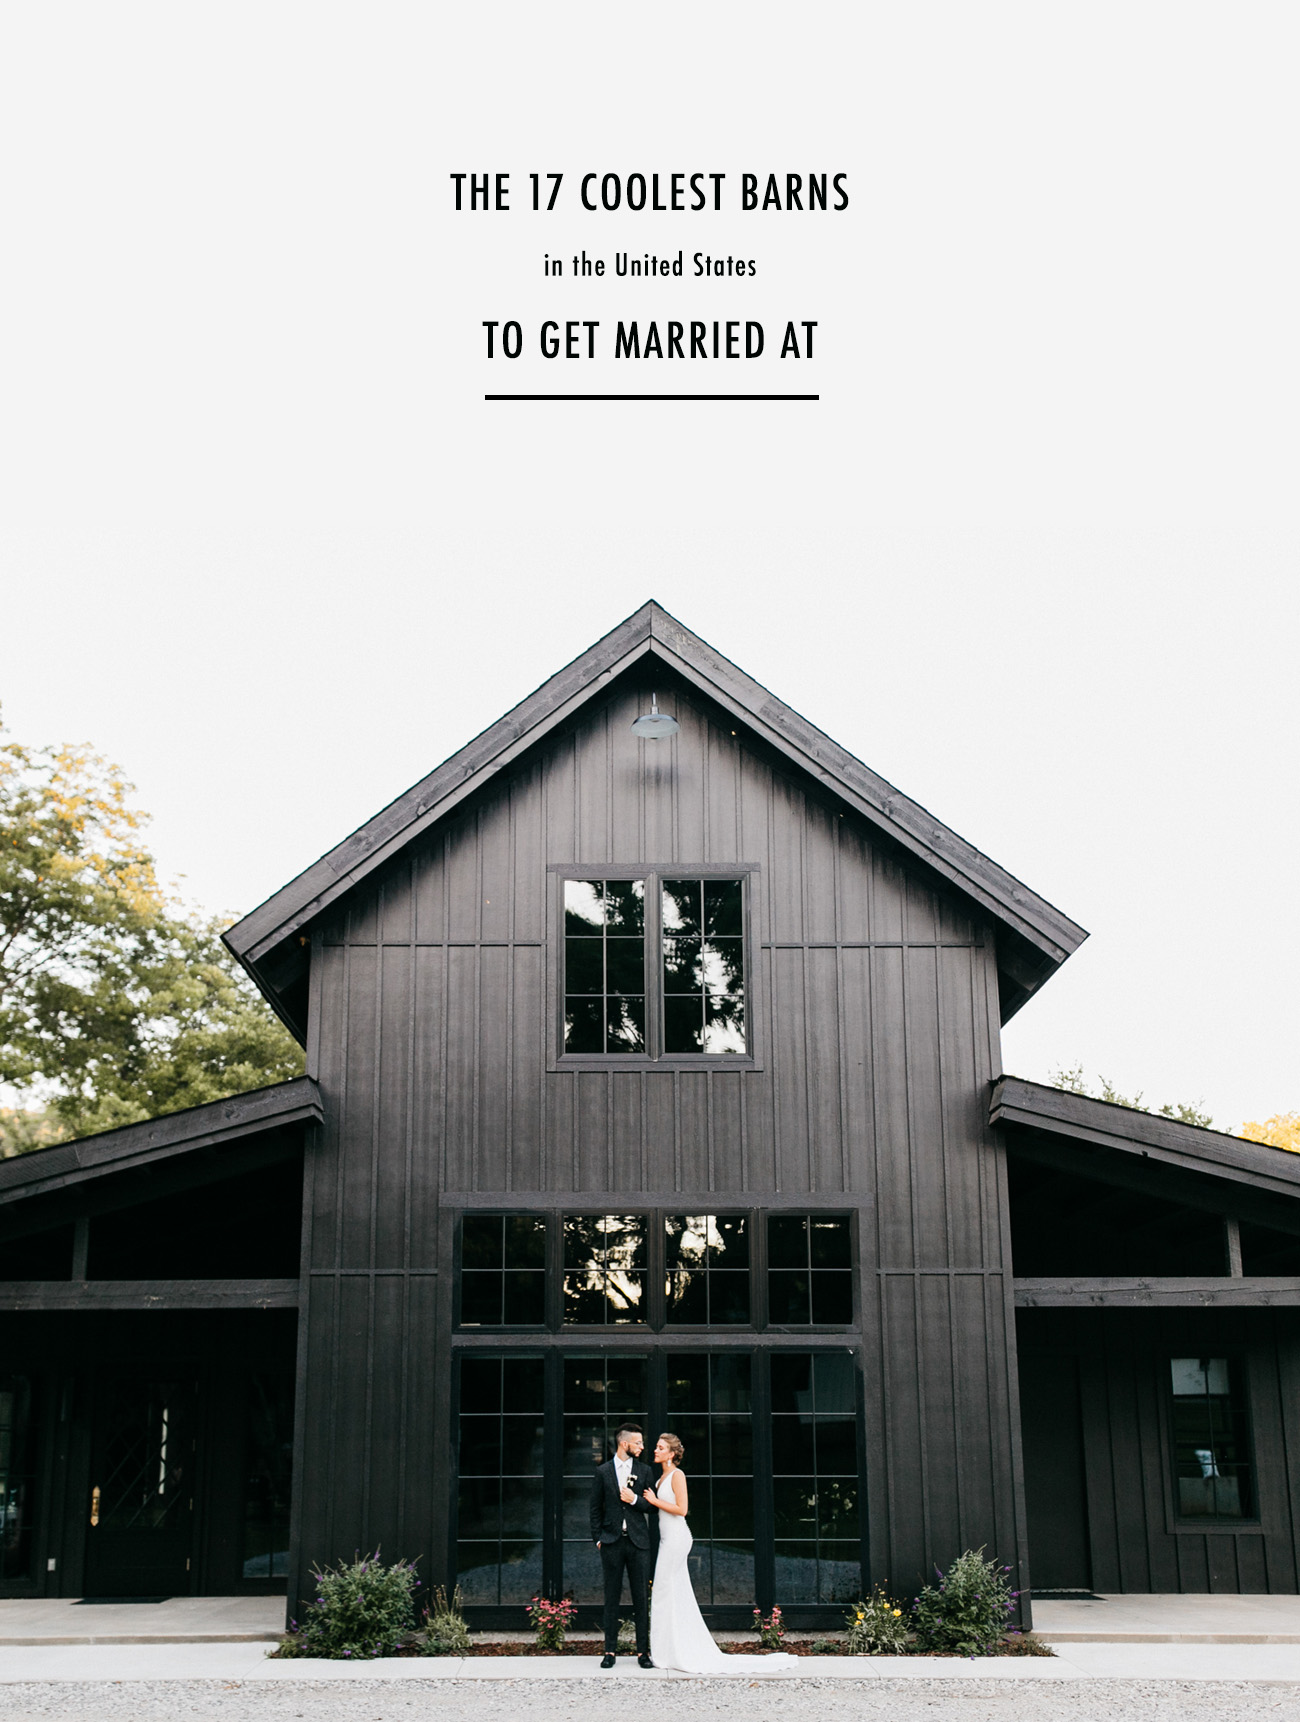 Coolest Barns in the US For Your Wedding